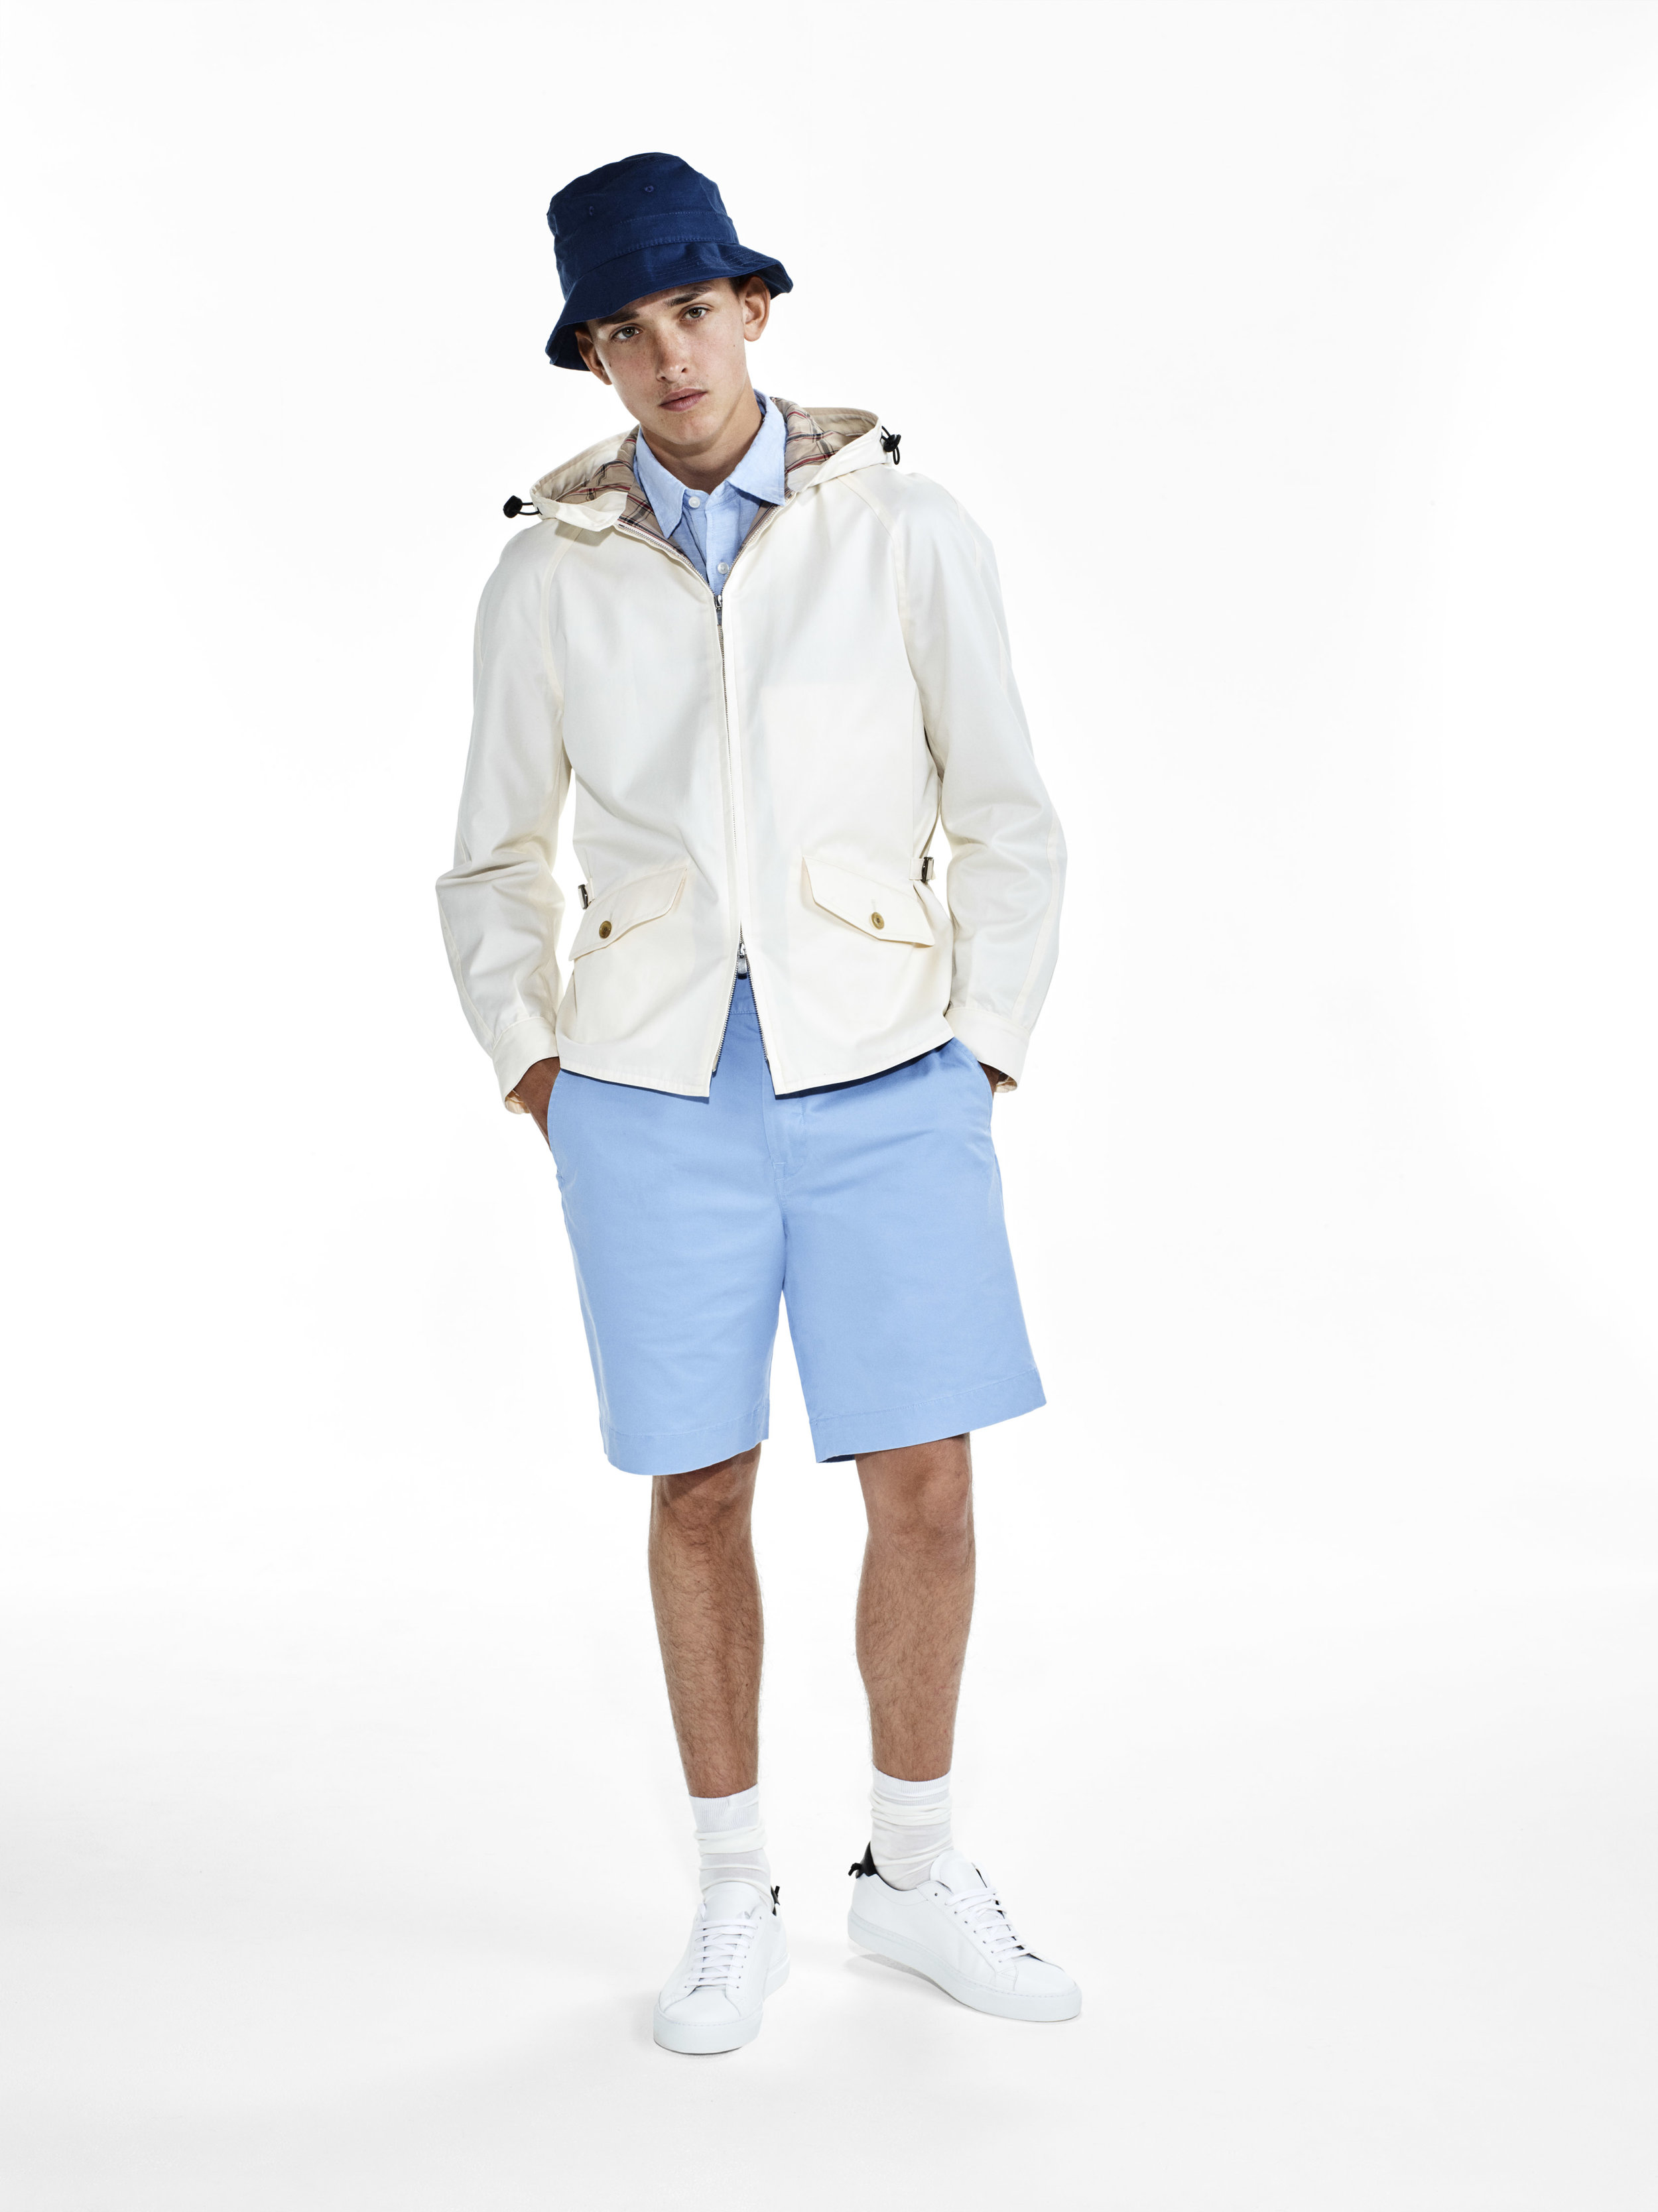 Hooded Golfer - Grenfell Cloth.jpg